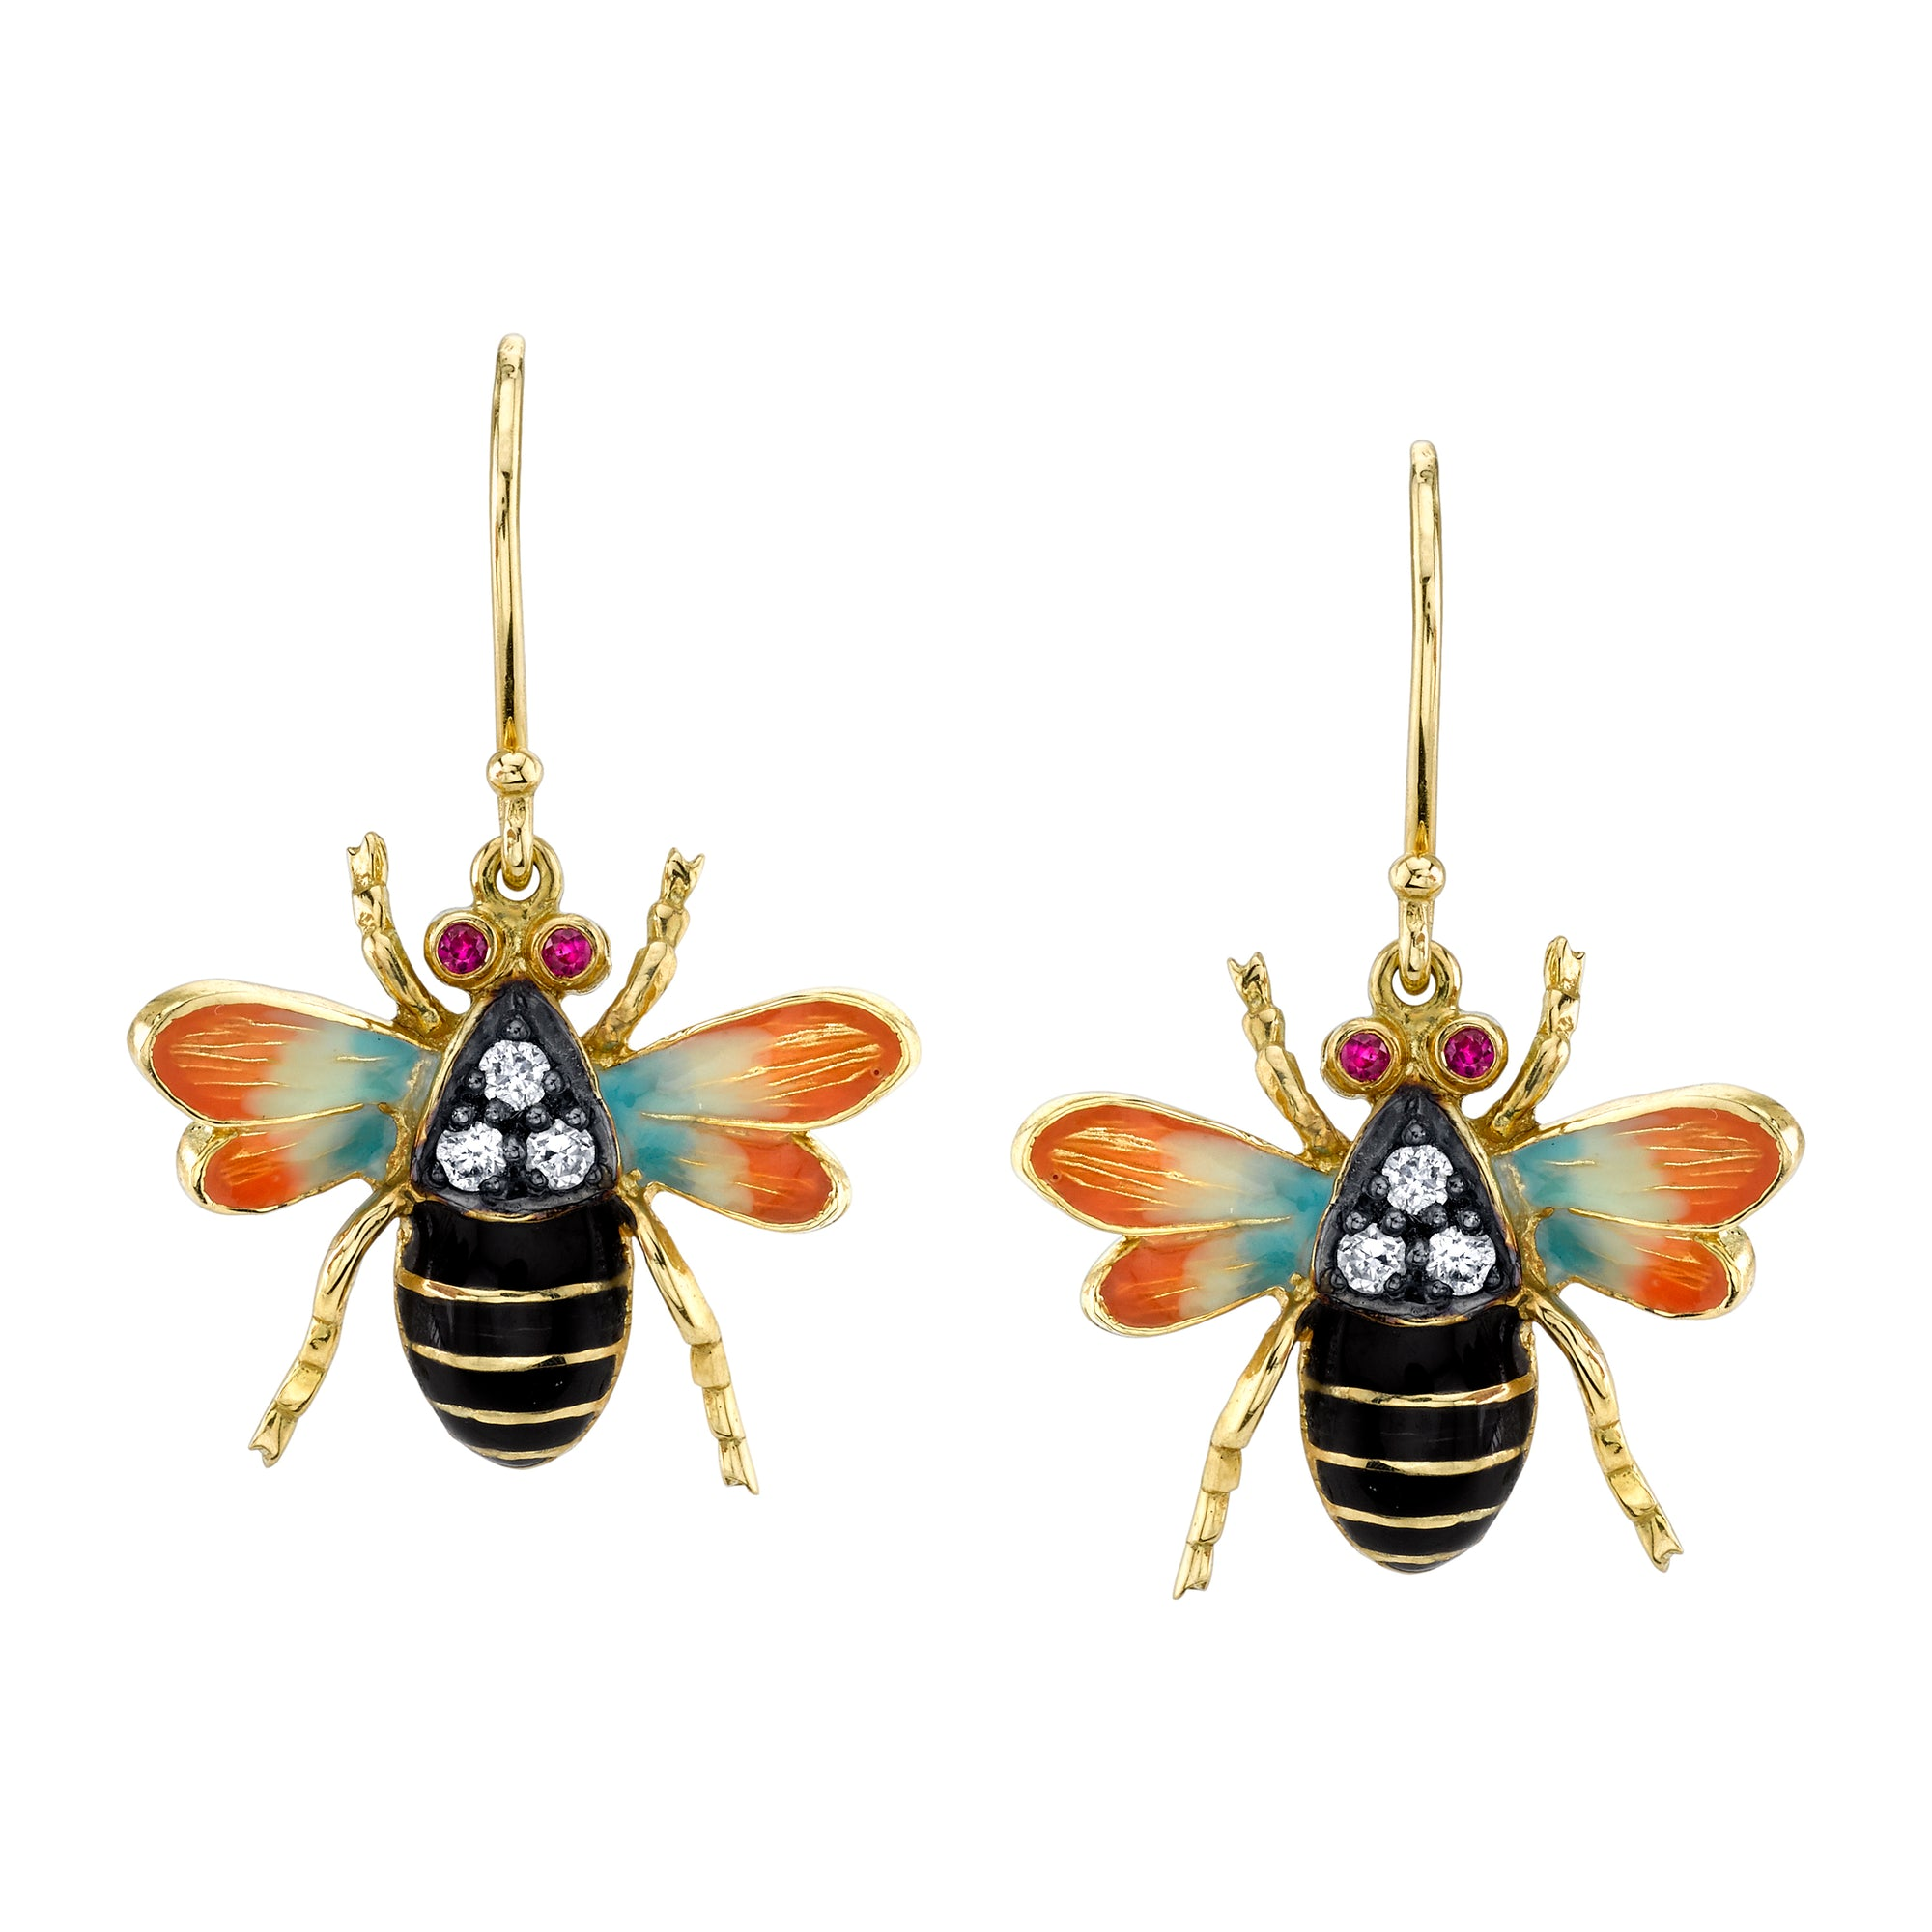 18k Yellow Gold and Enameled Bumble Bee Drop Earrings by Lord Jewelry - Talisman Collection Fine Jewelers